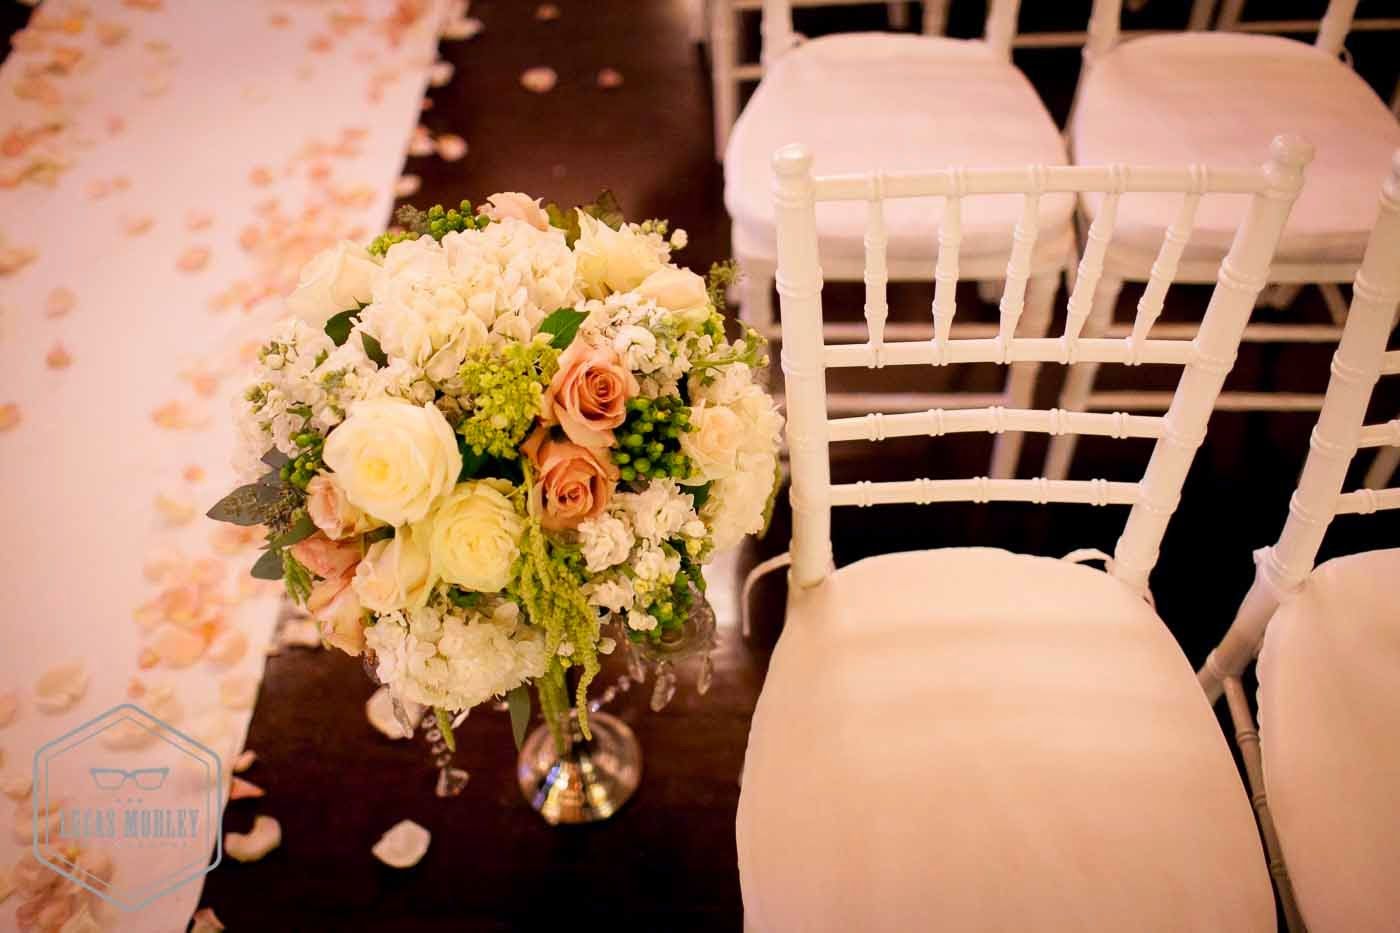 DeLille wedding ceremony, ceremony decor, Flora Nova Design